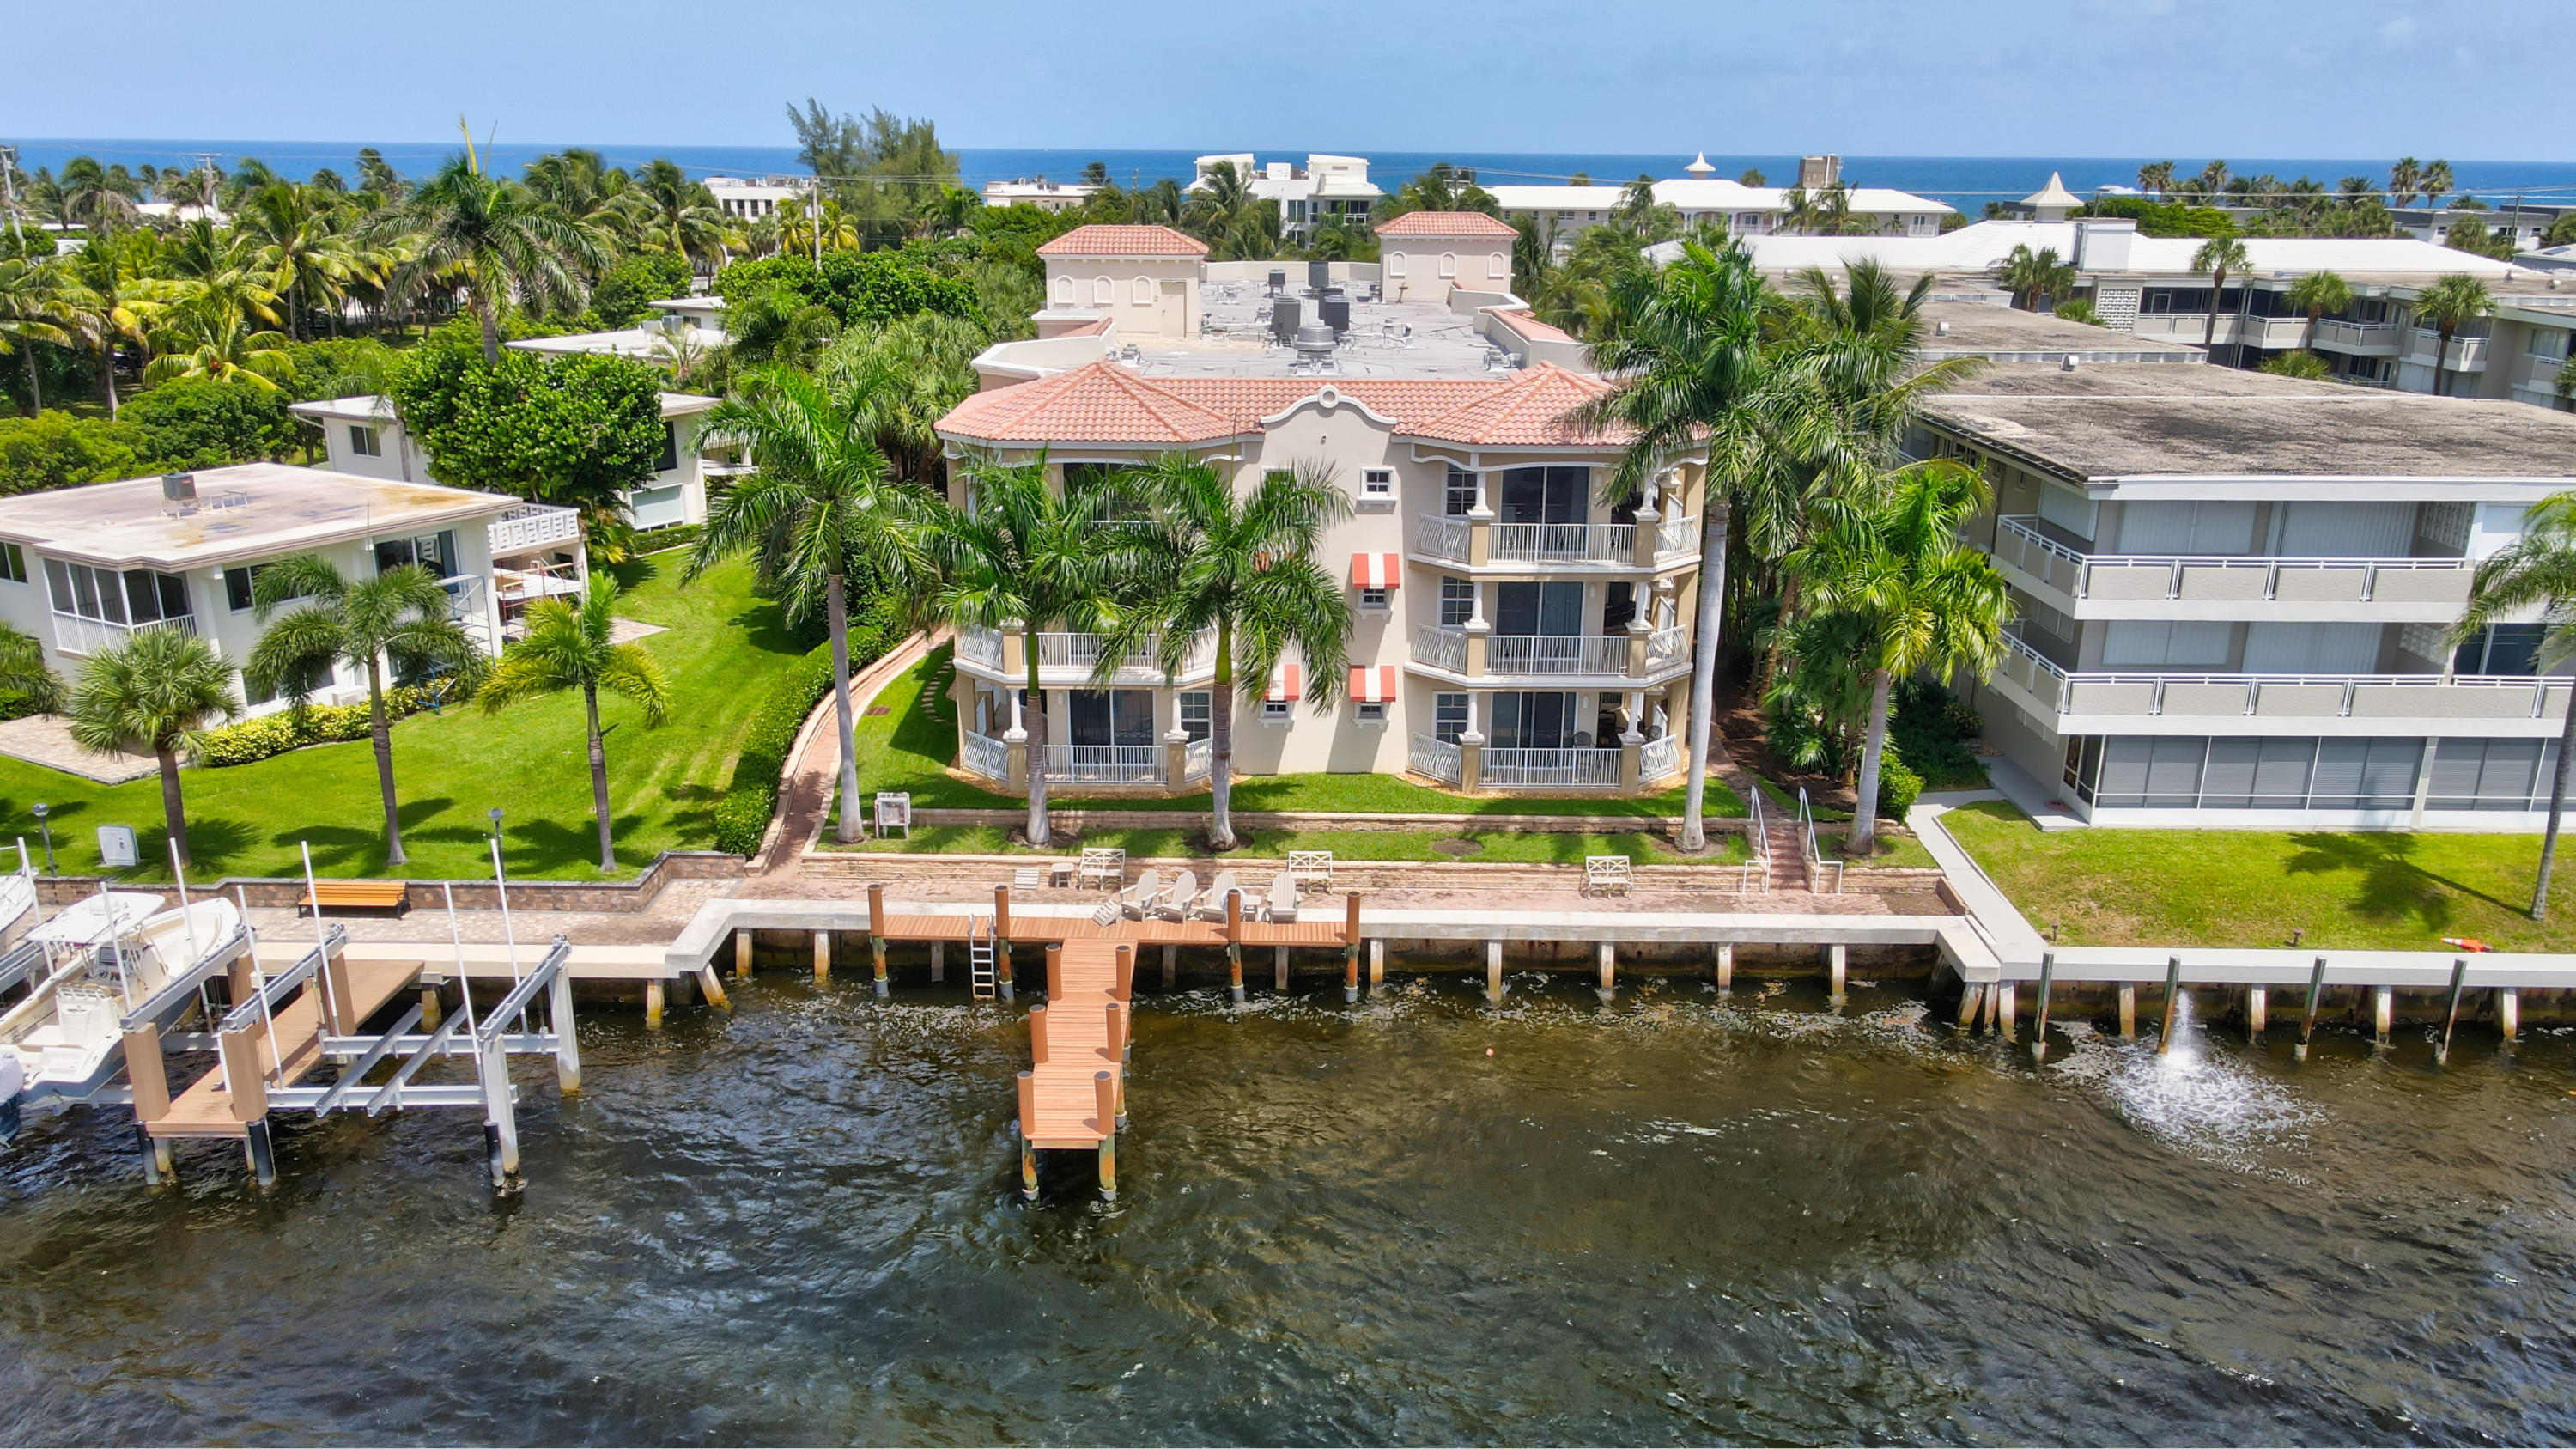 Home for sale in 1200 Hillsboro Mile Hillsboro Beach Florida